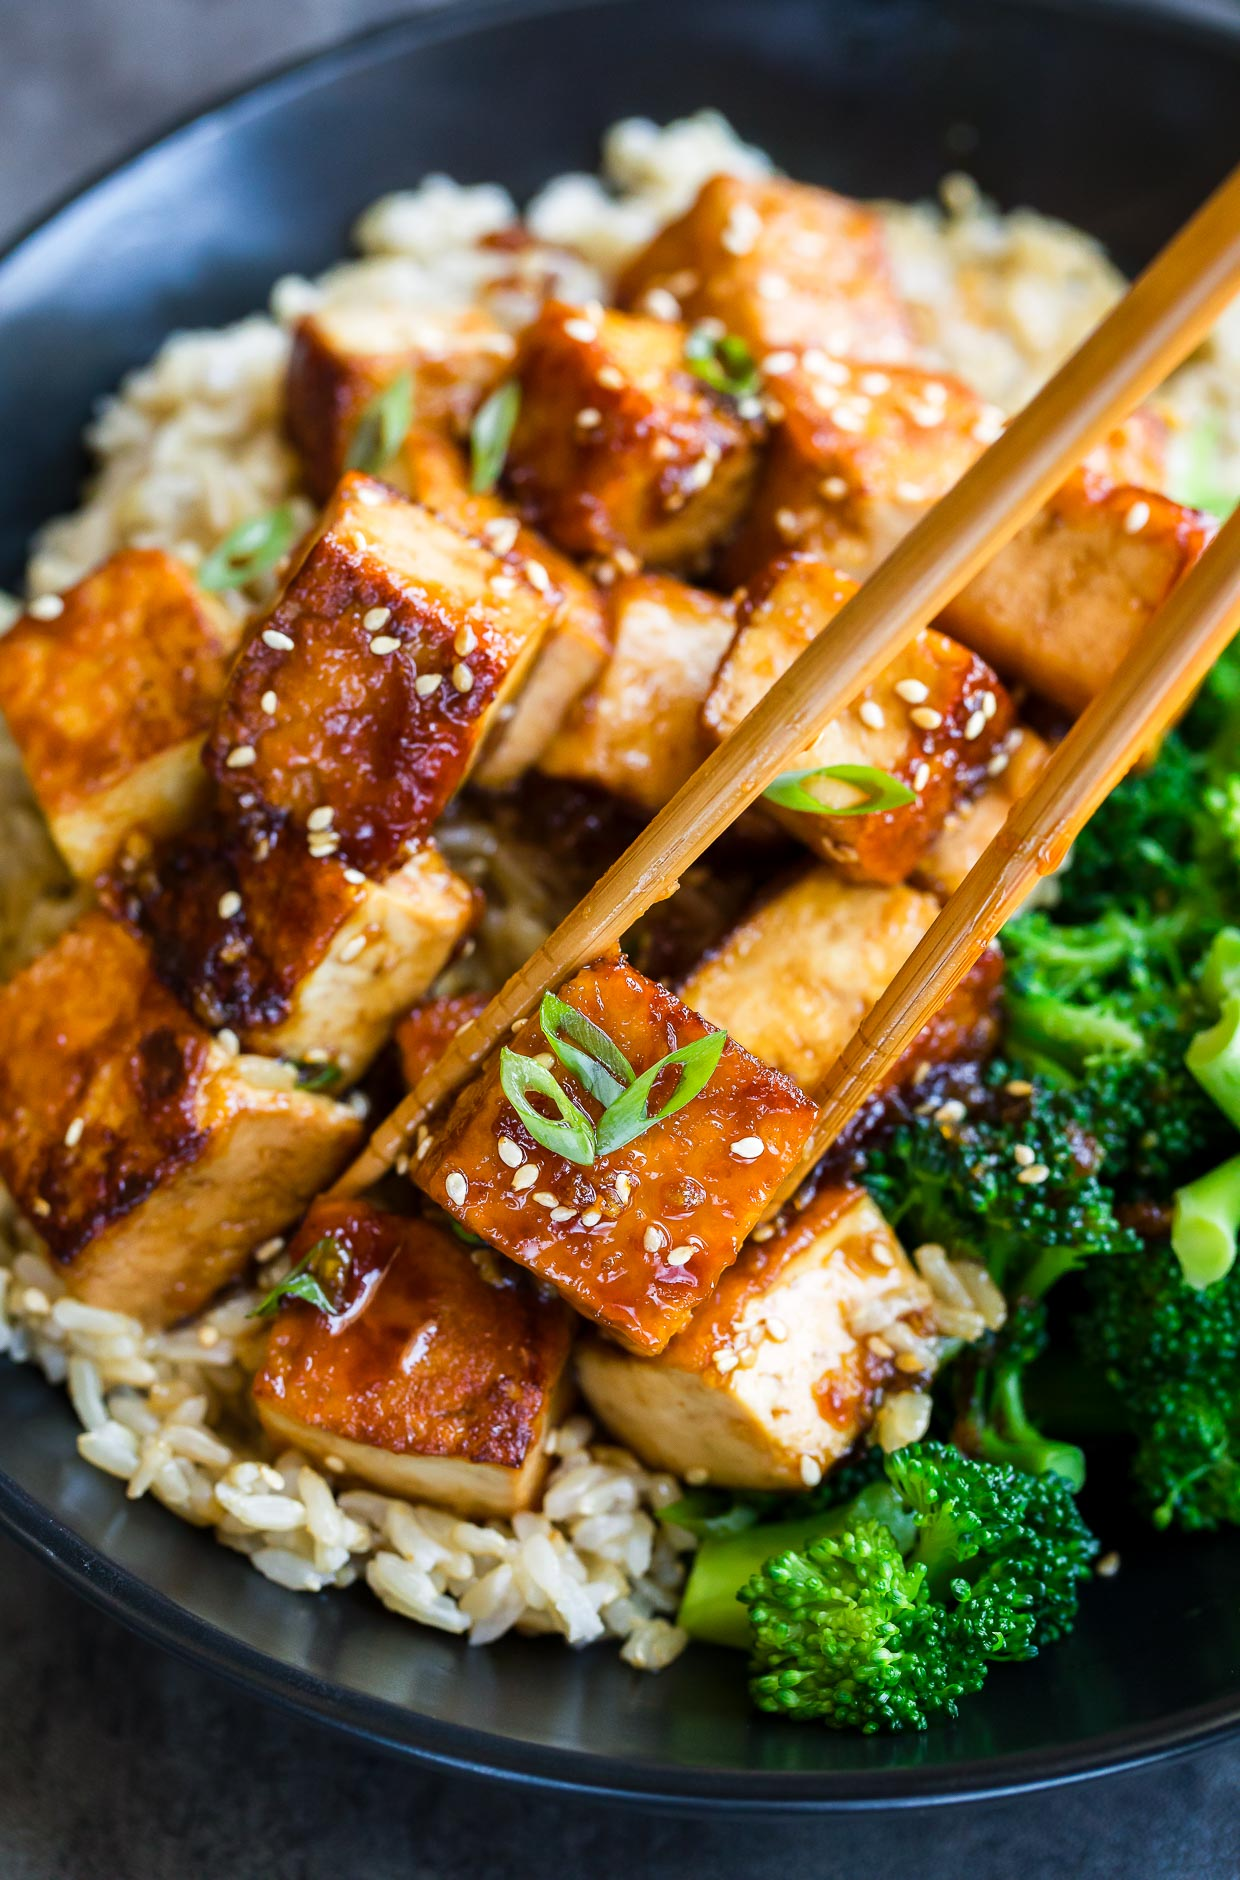 Honey Garlic Tofu with broccoli and chopsticks